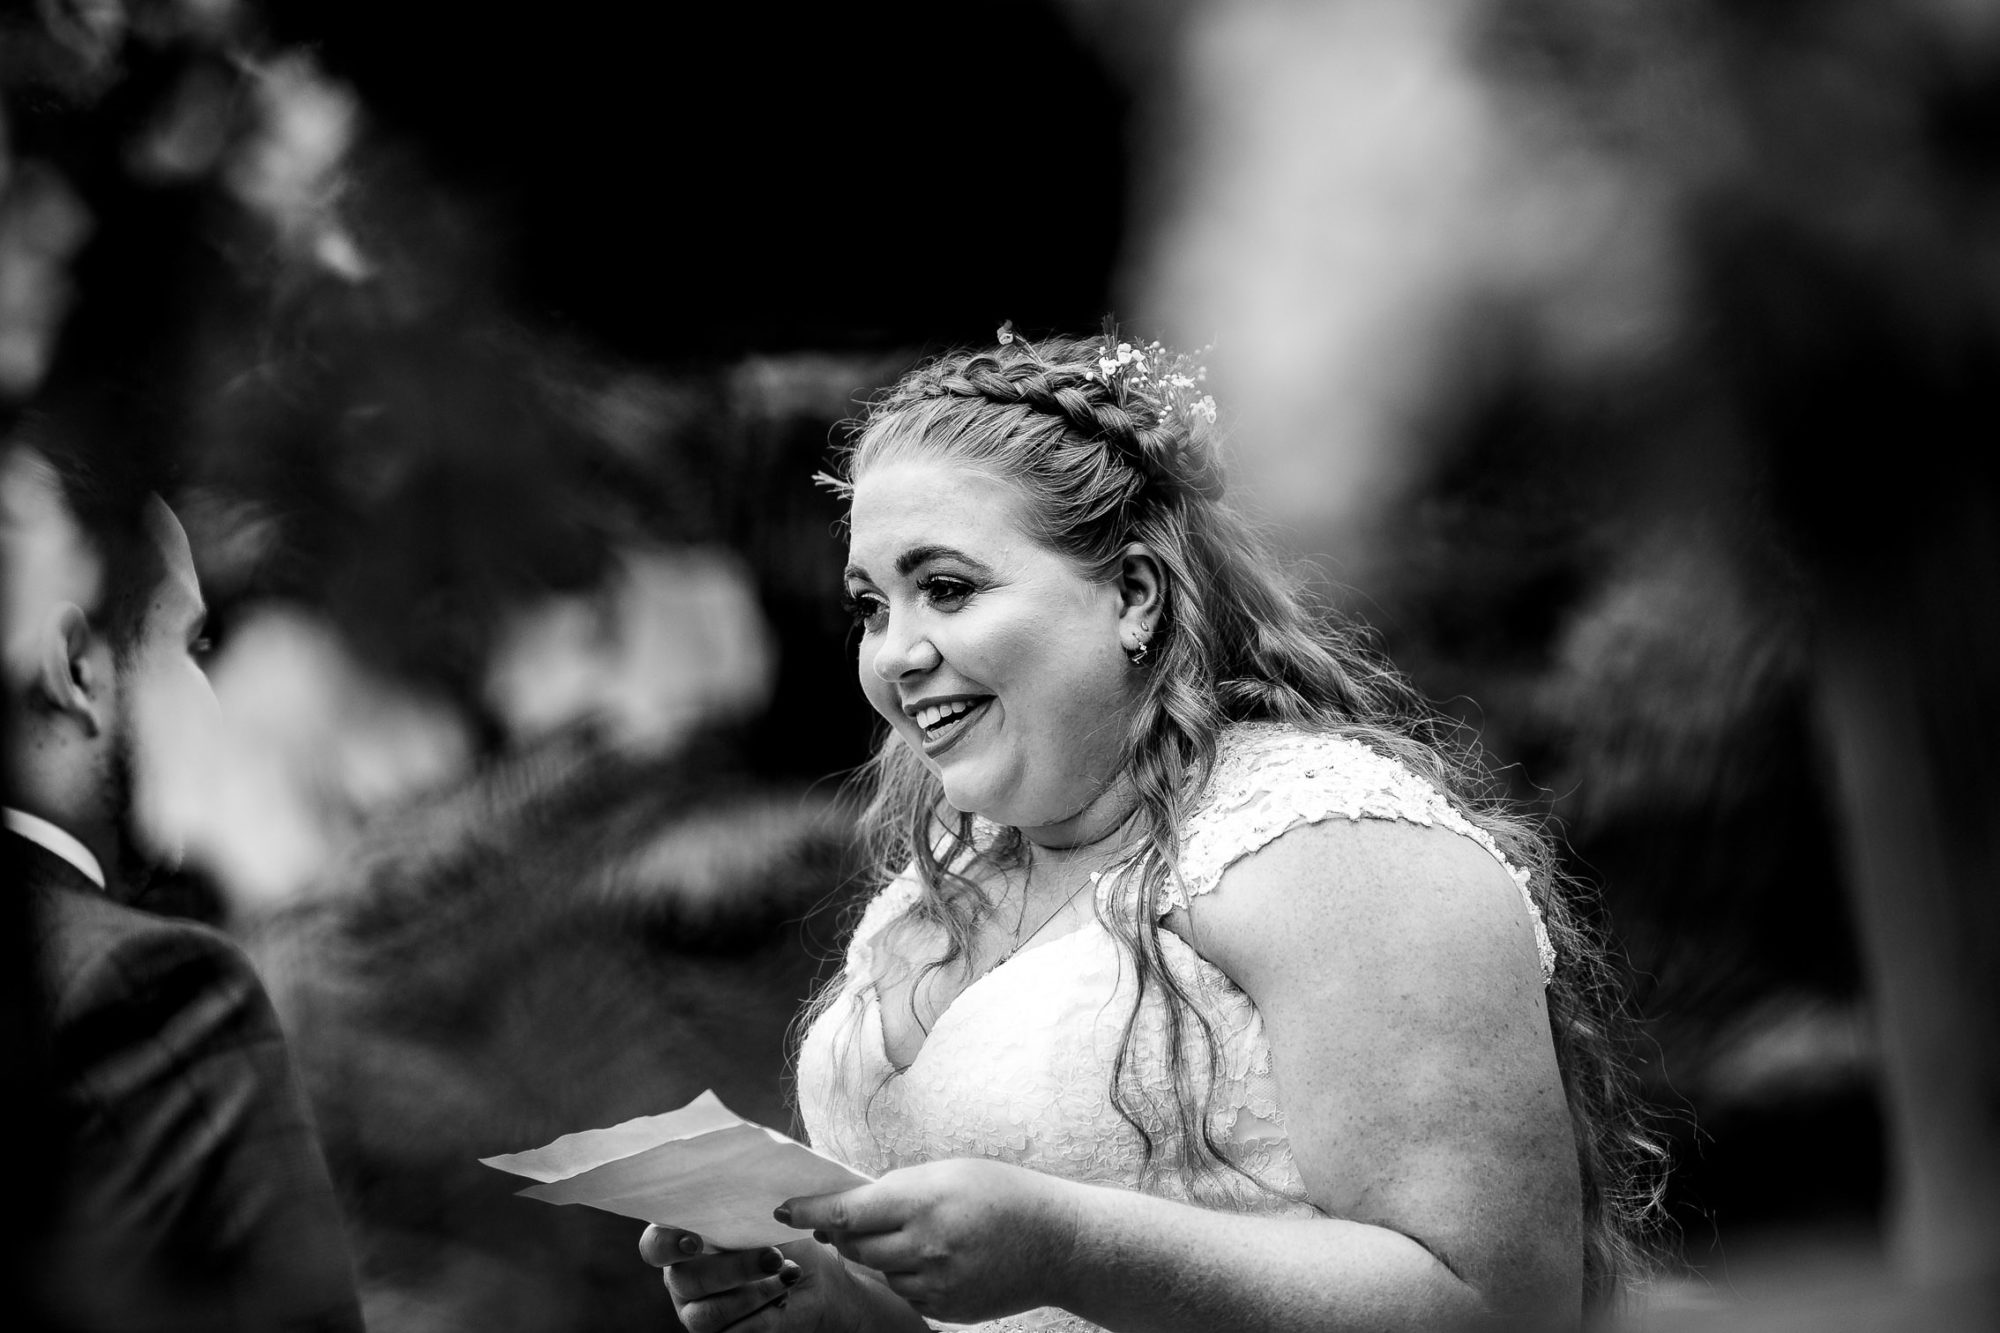 Dorset Wedding